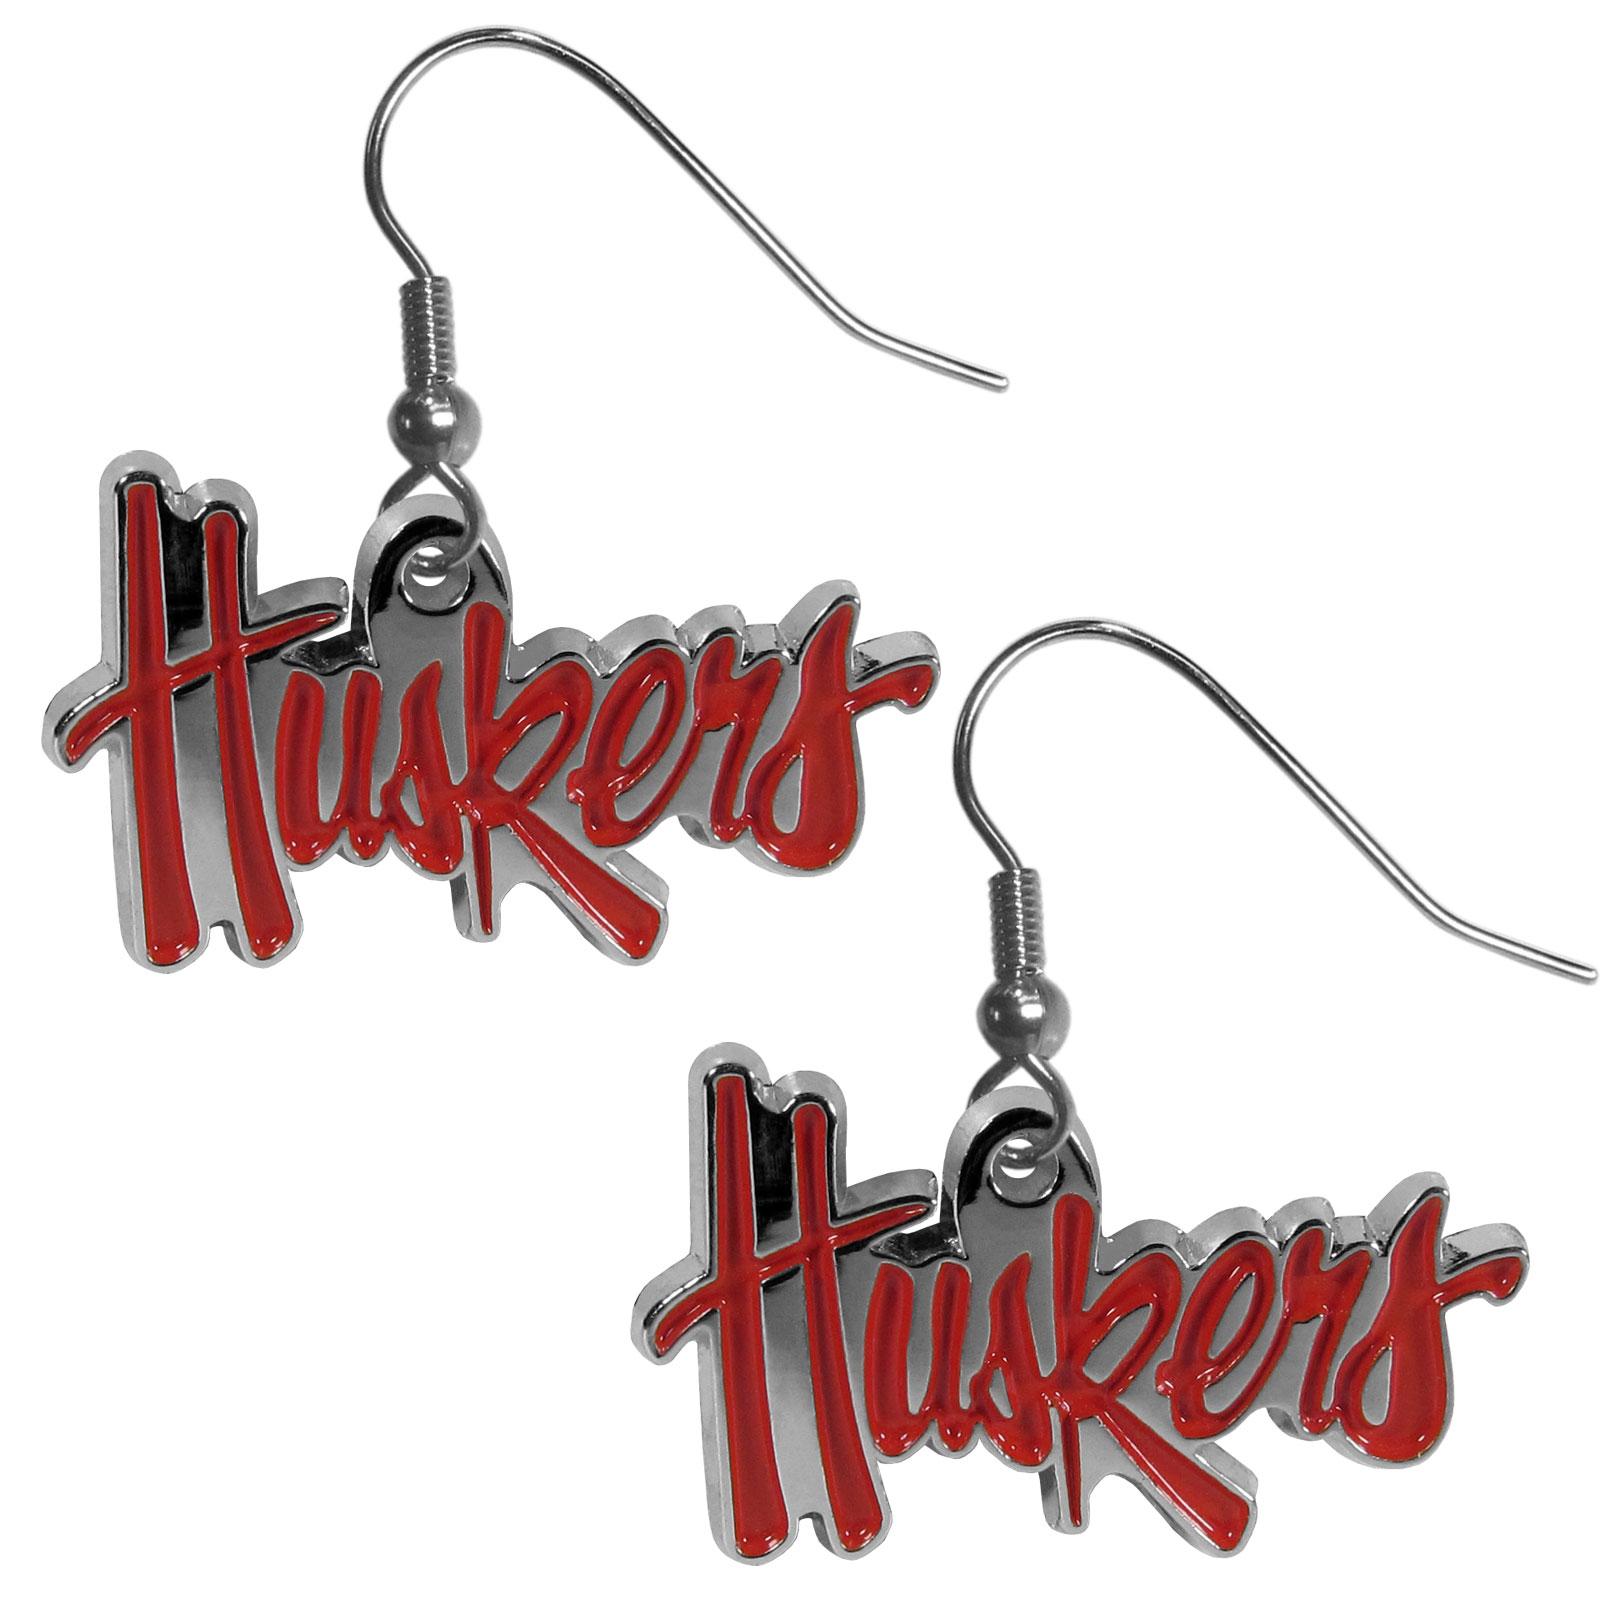 Nebraska Cornhuskers Chrome Dangle Earrings - Our officially licensed collegiate dangle earrings have fully cast Nebraska Cornhuskers charms with exceptional detail and a hand enameled finish. The earrings have a high polish nickel free chrome finish and hypoallergenic fishhook posts.